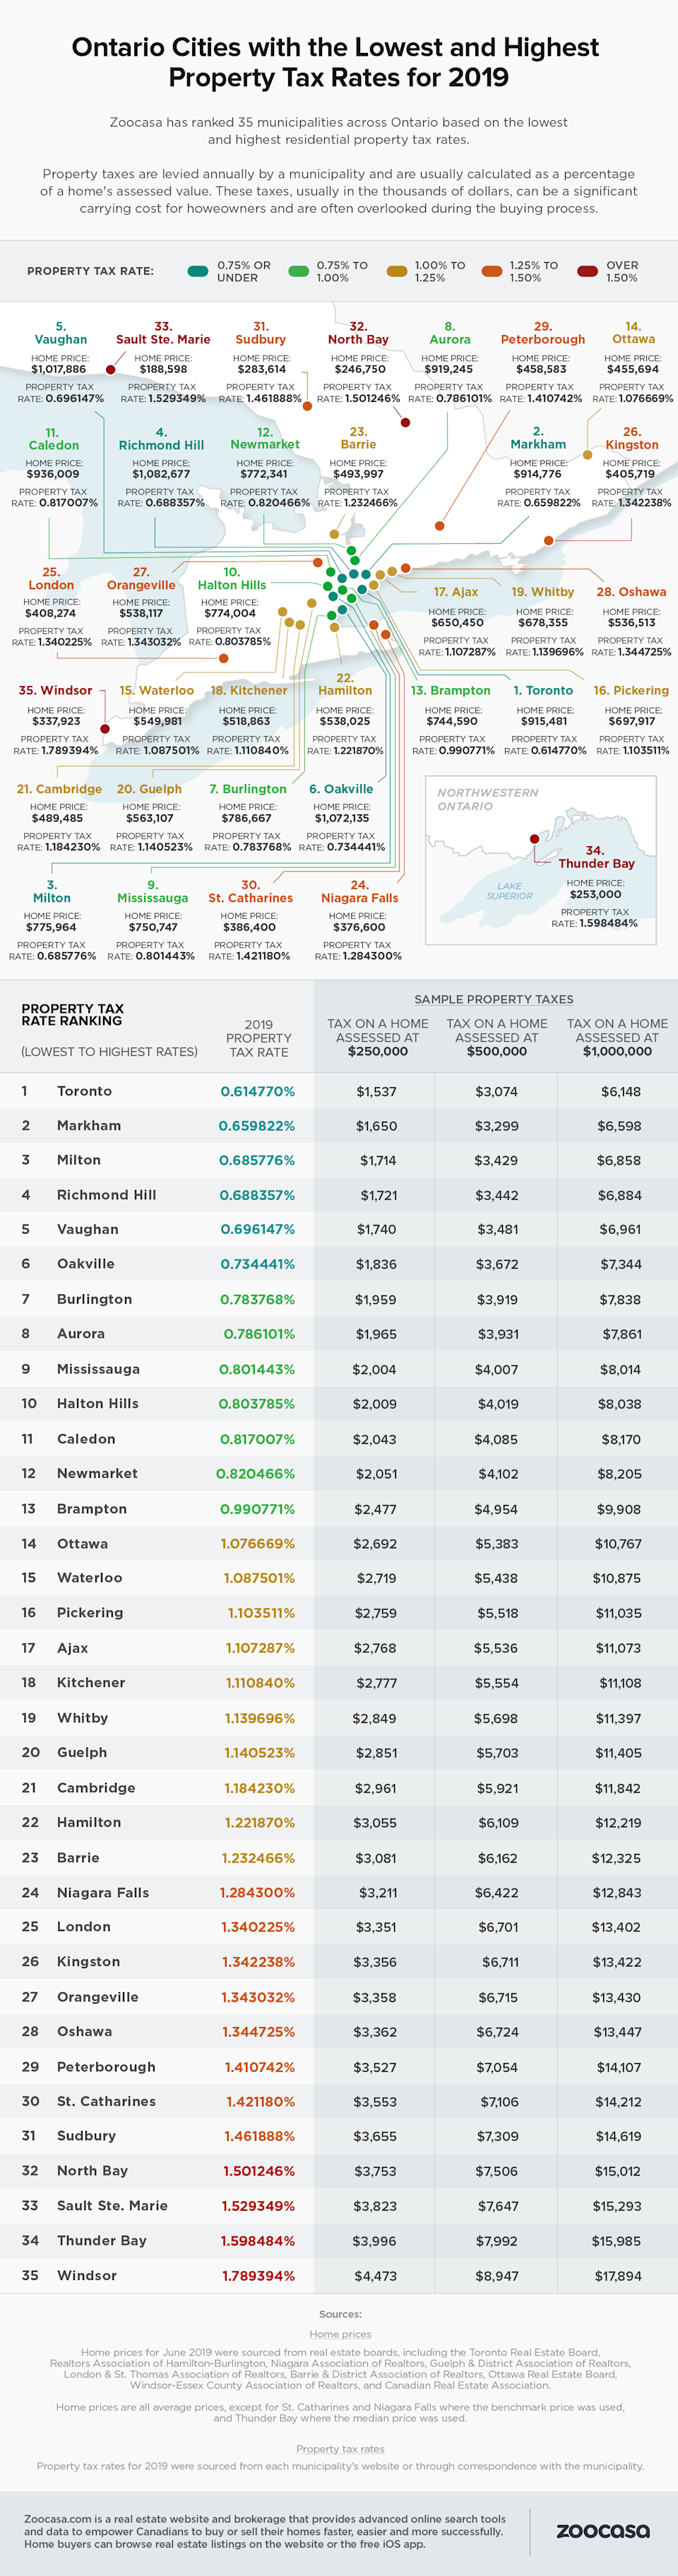 Zoocasa ranked 35 municipalities across Ontario based on their residential property tax rates.